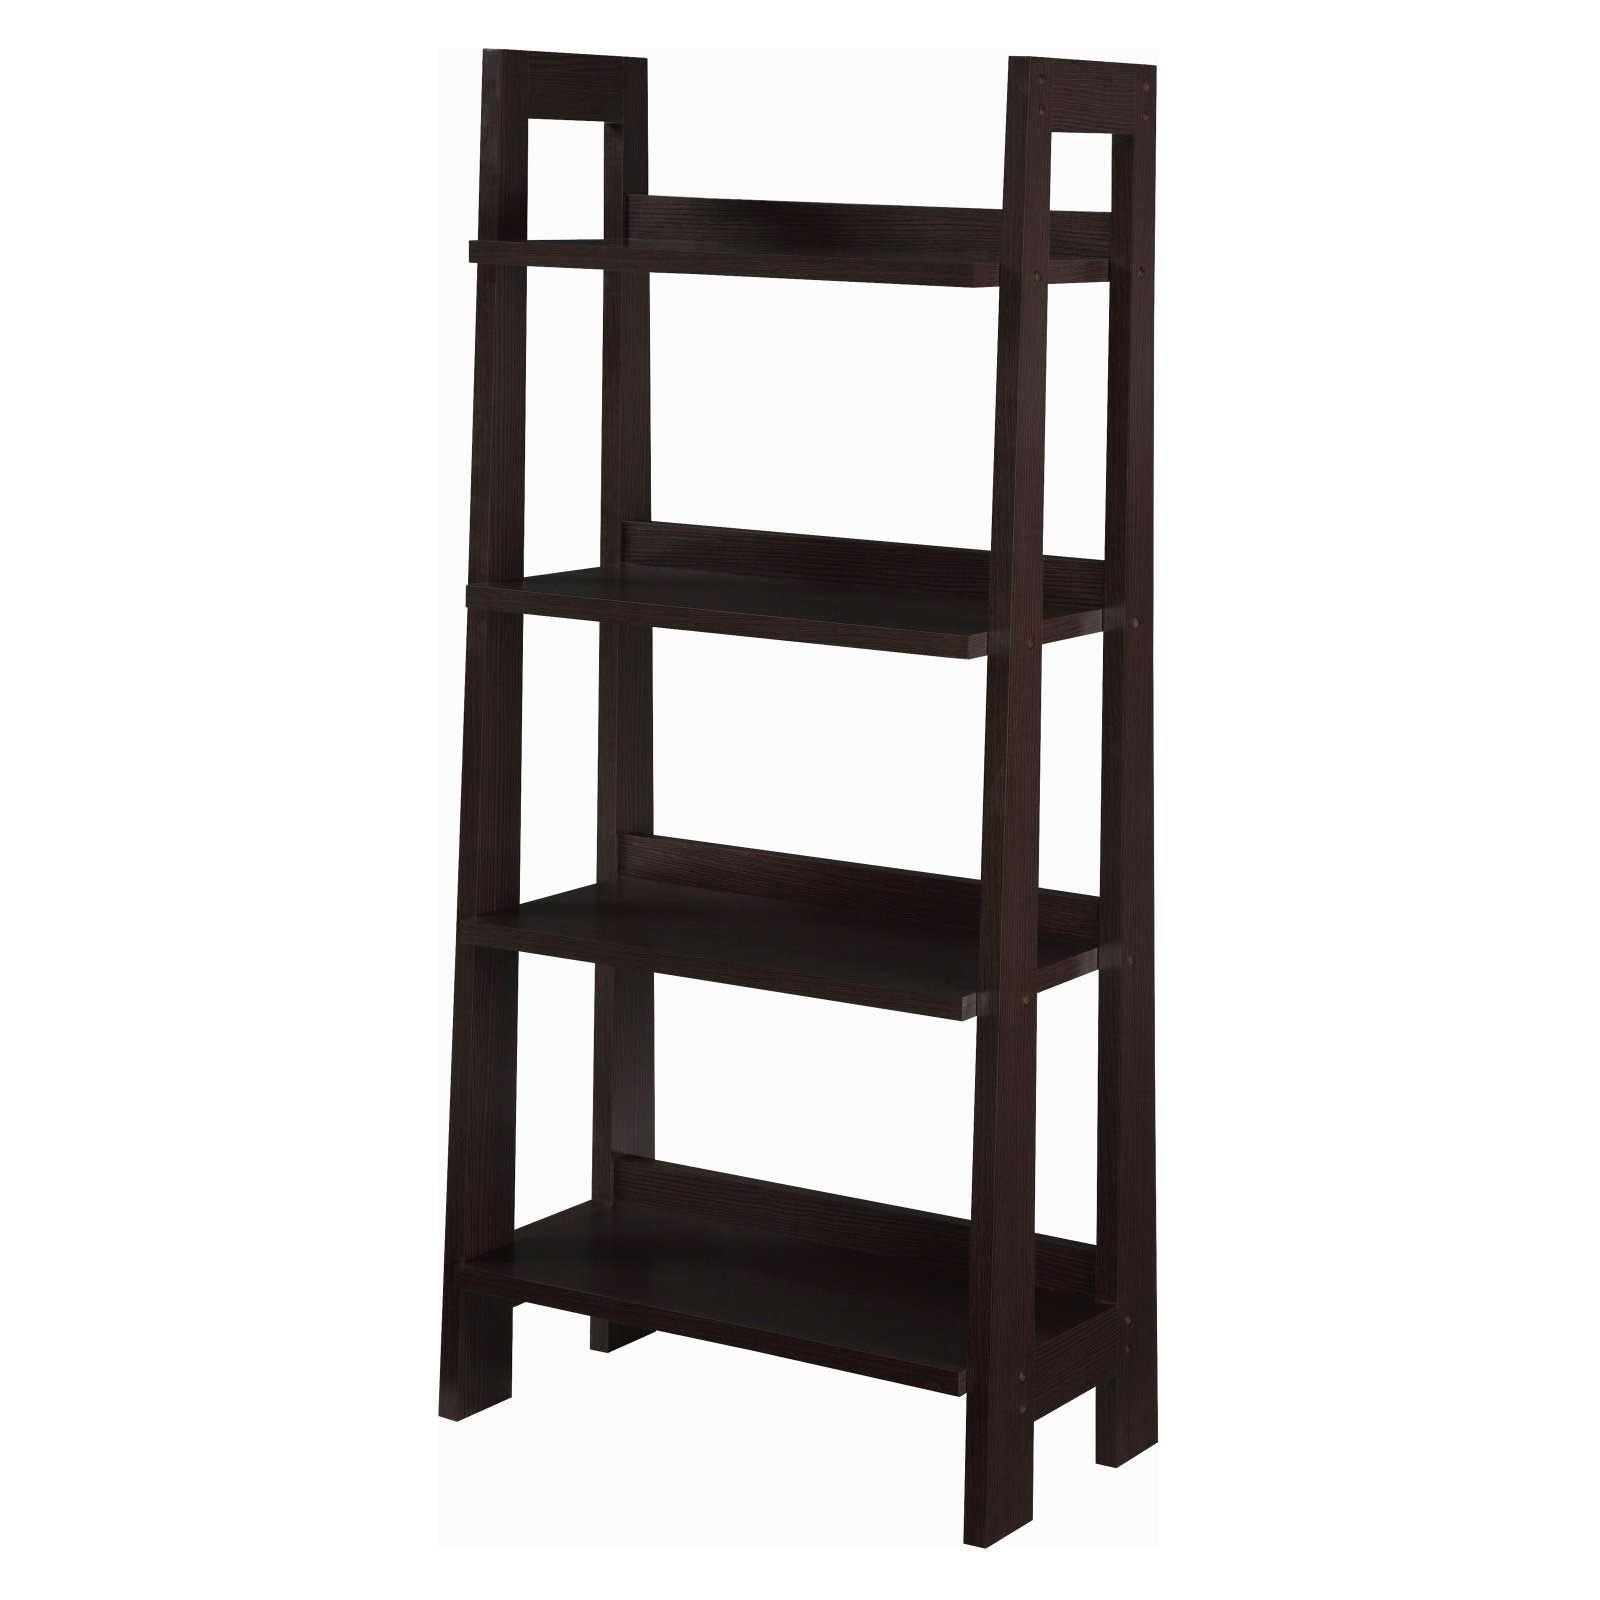 Famous Espresso Bookcases For Images About Furniture On Pinterest Bookcases Tv Stand With (Gallery 4 of 15)